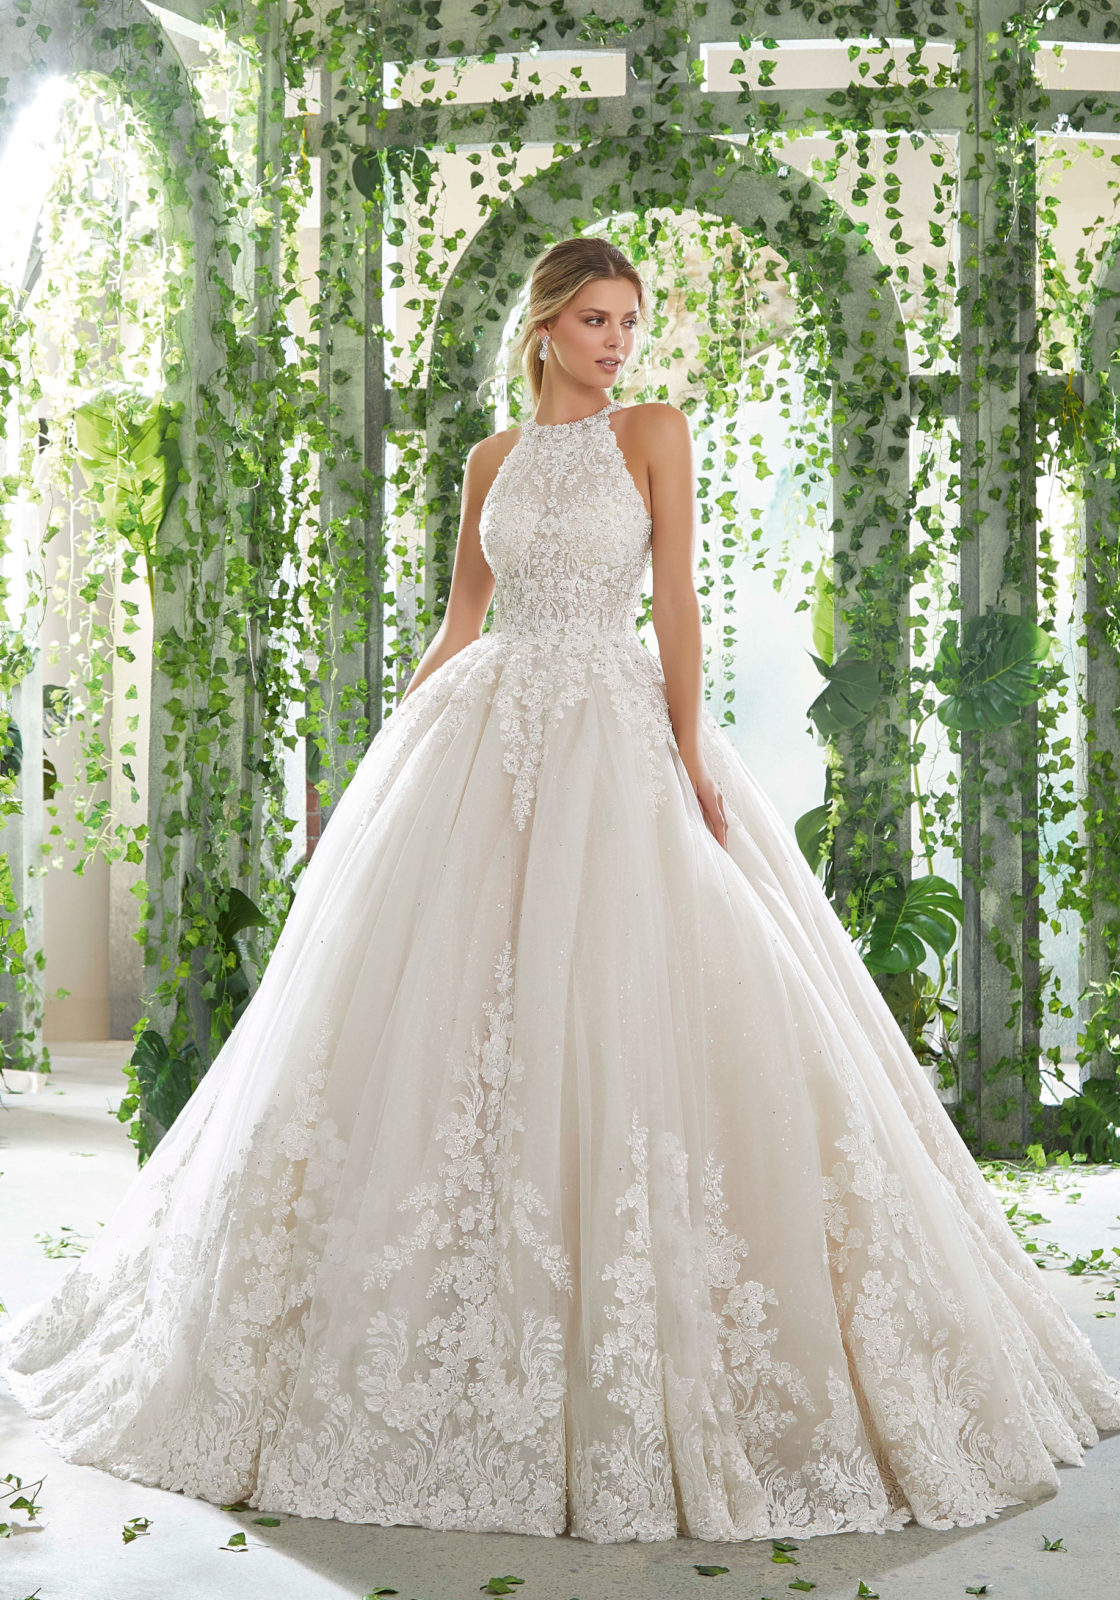 AF Couture wedding dresses at Miosa Bride